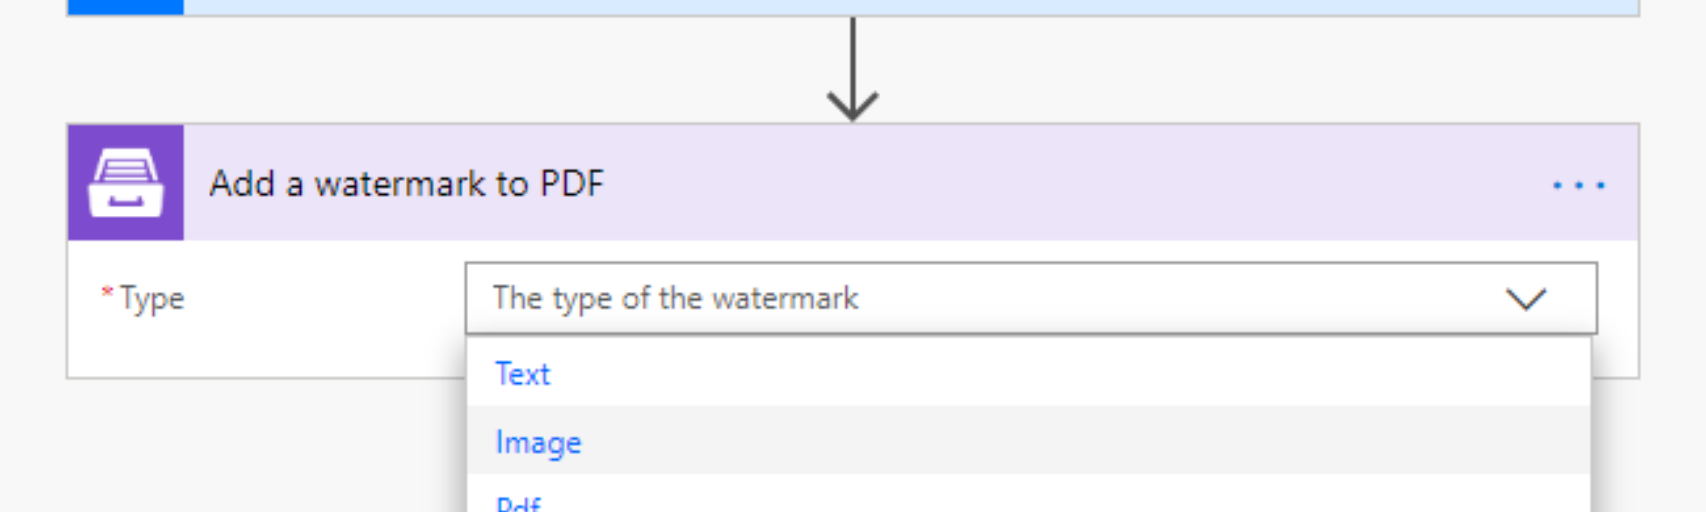 How to add a watermark to a PDF document using Microsoft